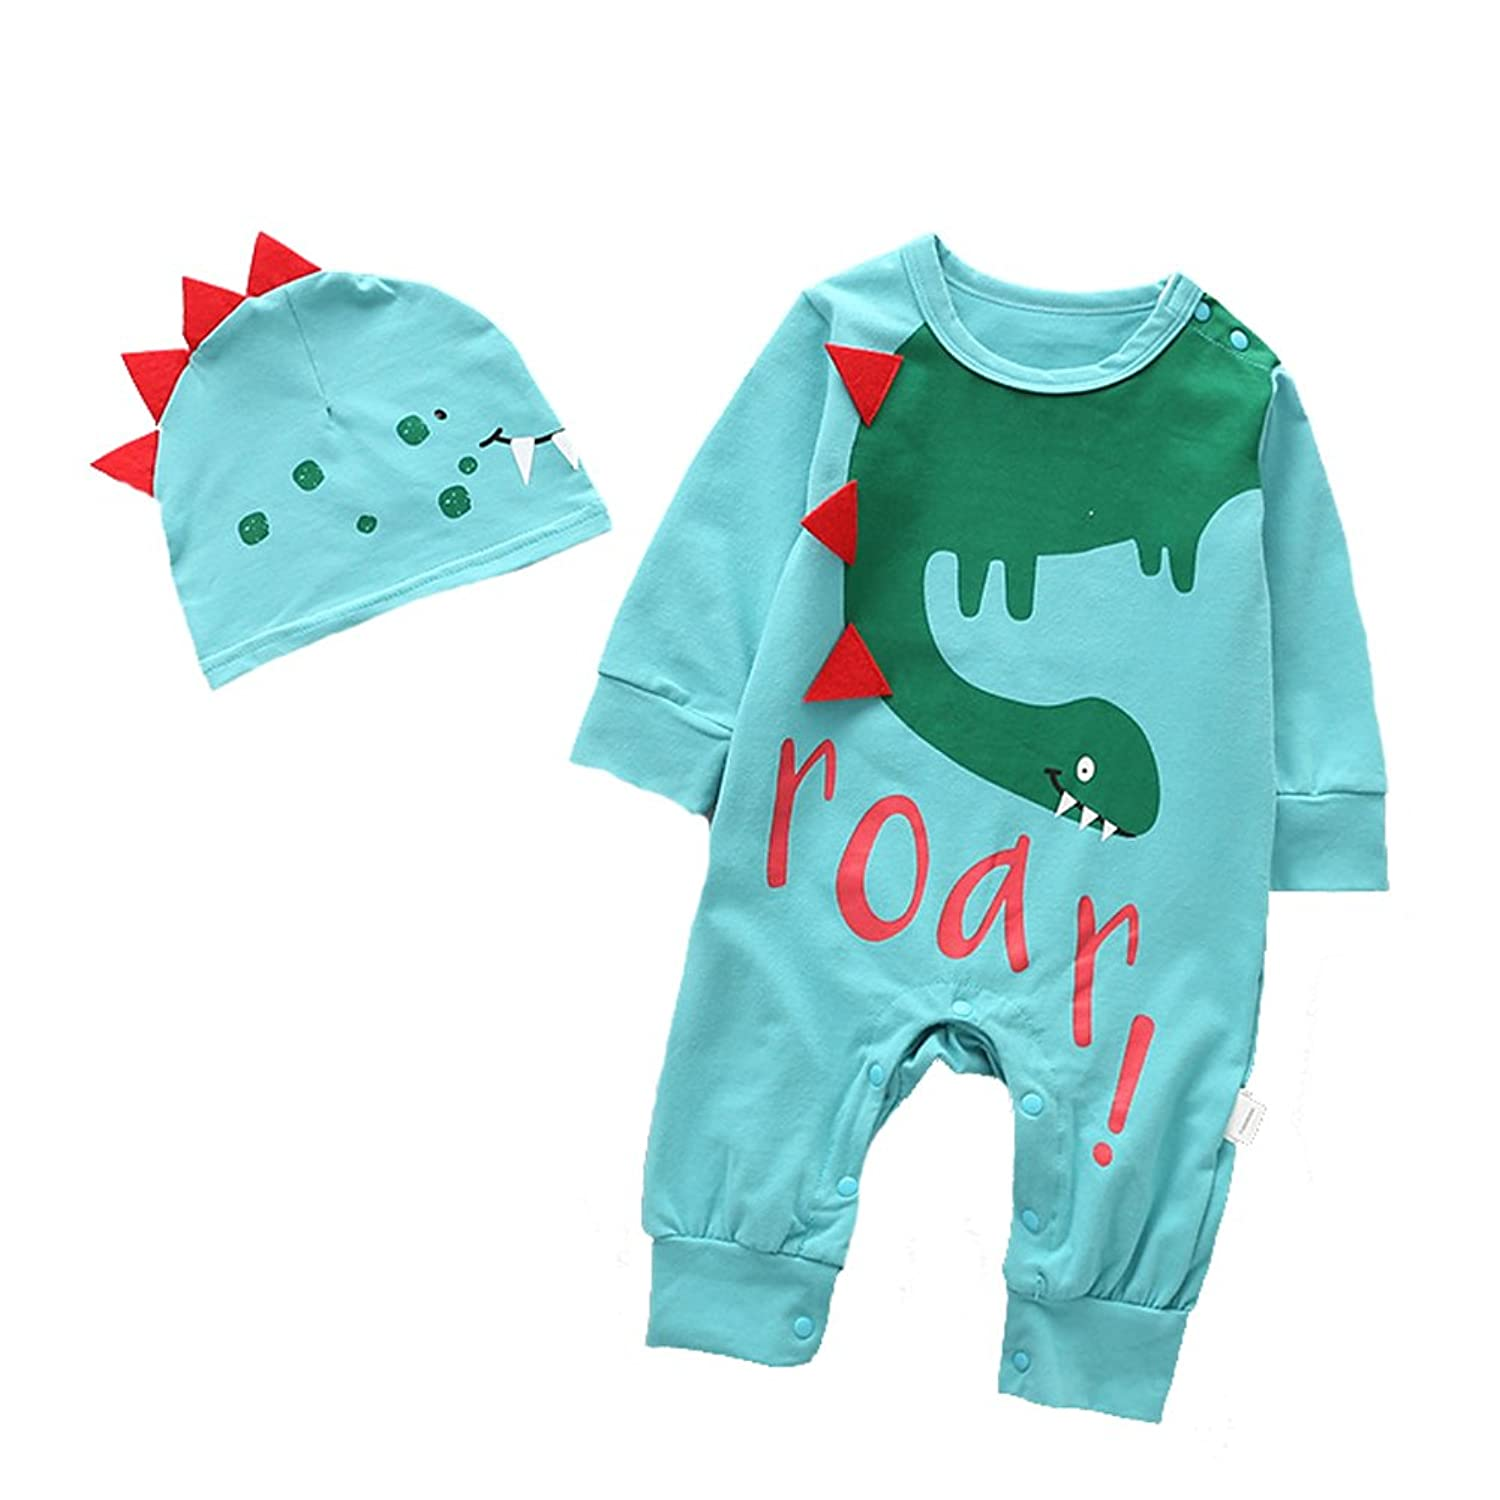 ALLAIBB e Piece Baby Rompers Long Sleeve Footless Cotton Pajamas